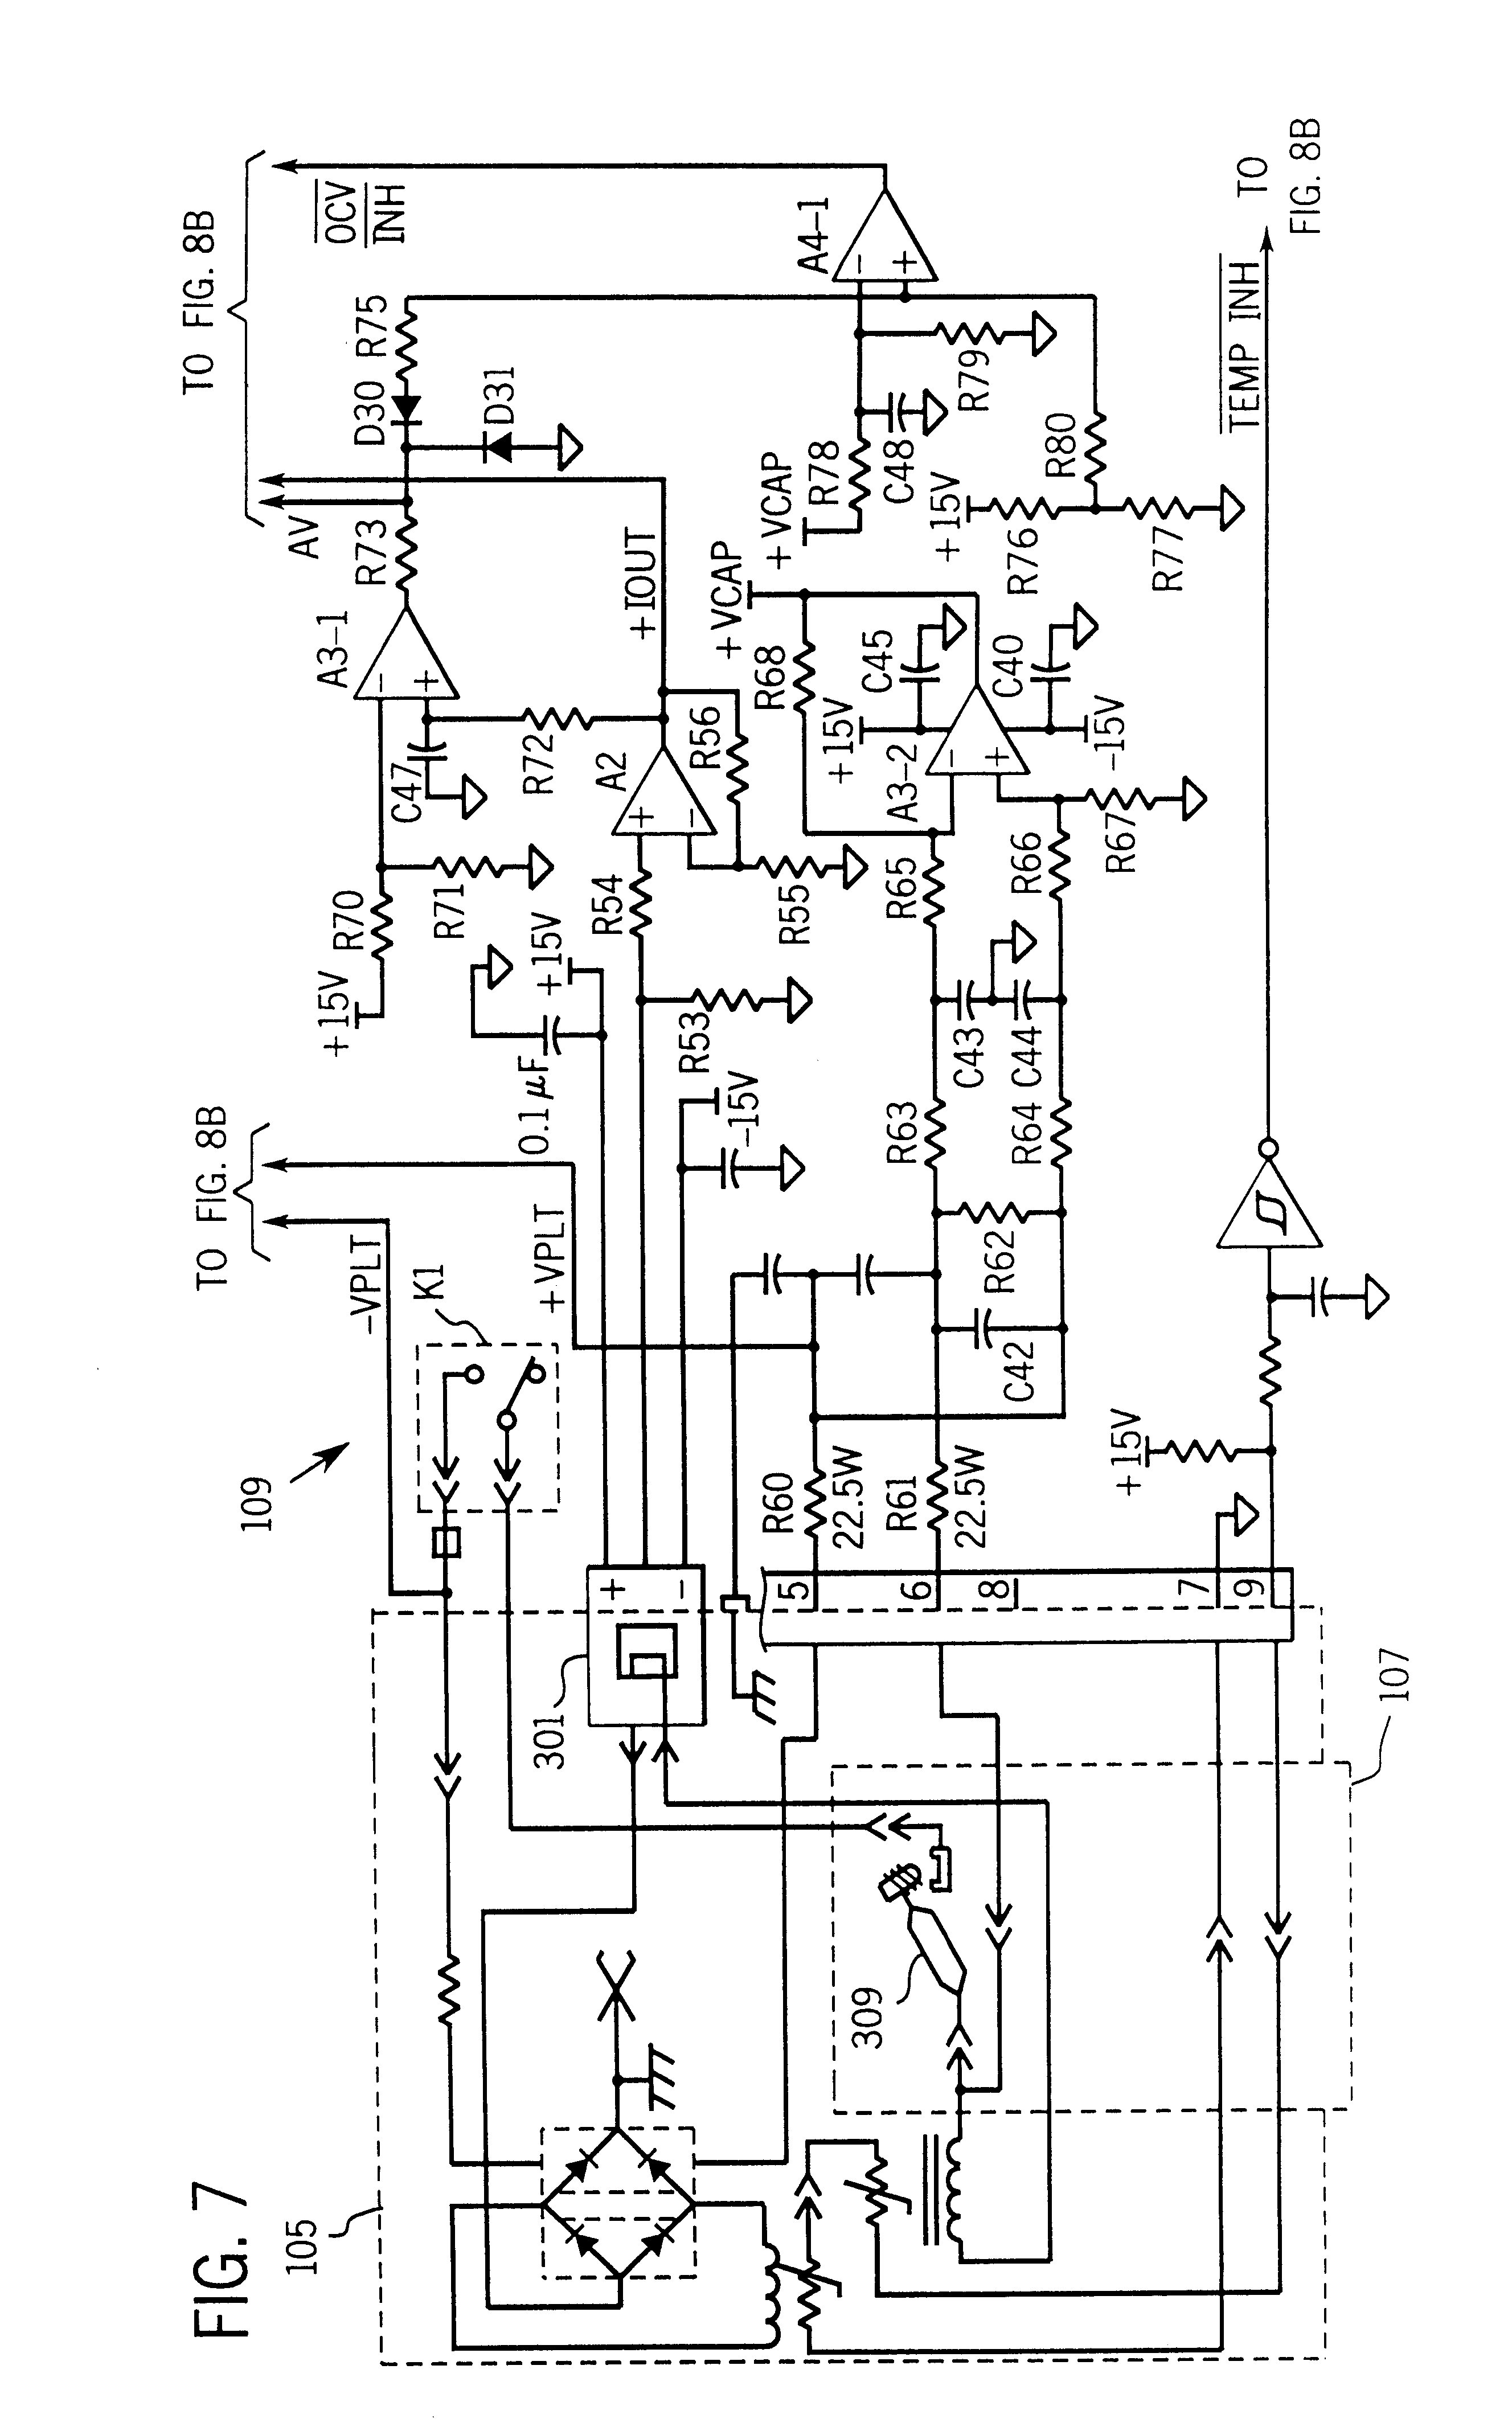 patent us6242710 - method and apparatus for a contact start plasma cutting process